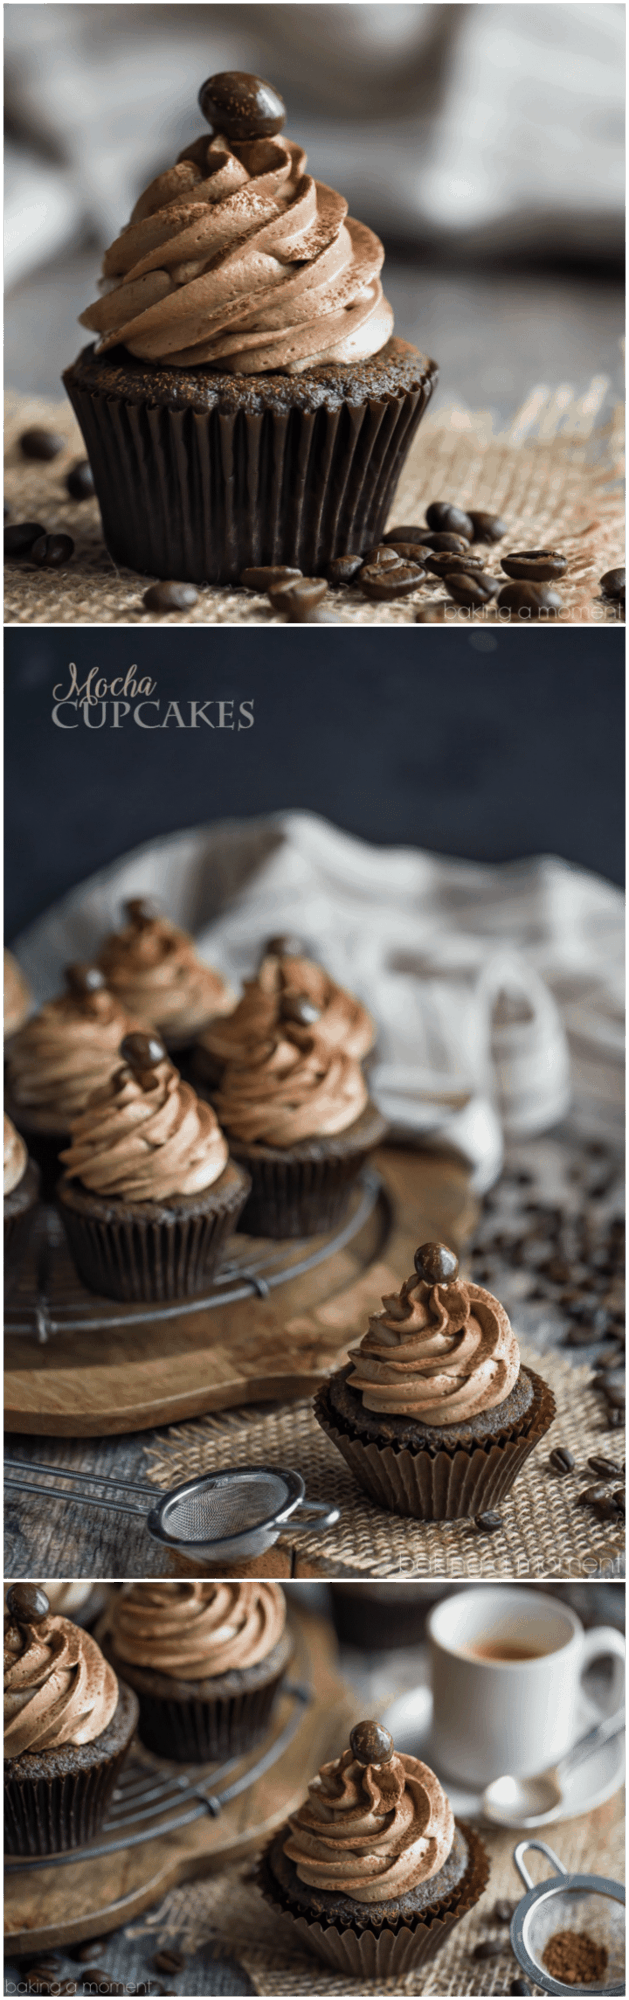 Mocha Cupcakes: Omg so good! If you like coffee and chocolate, you'll LOVE this cupcake recipe!